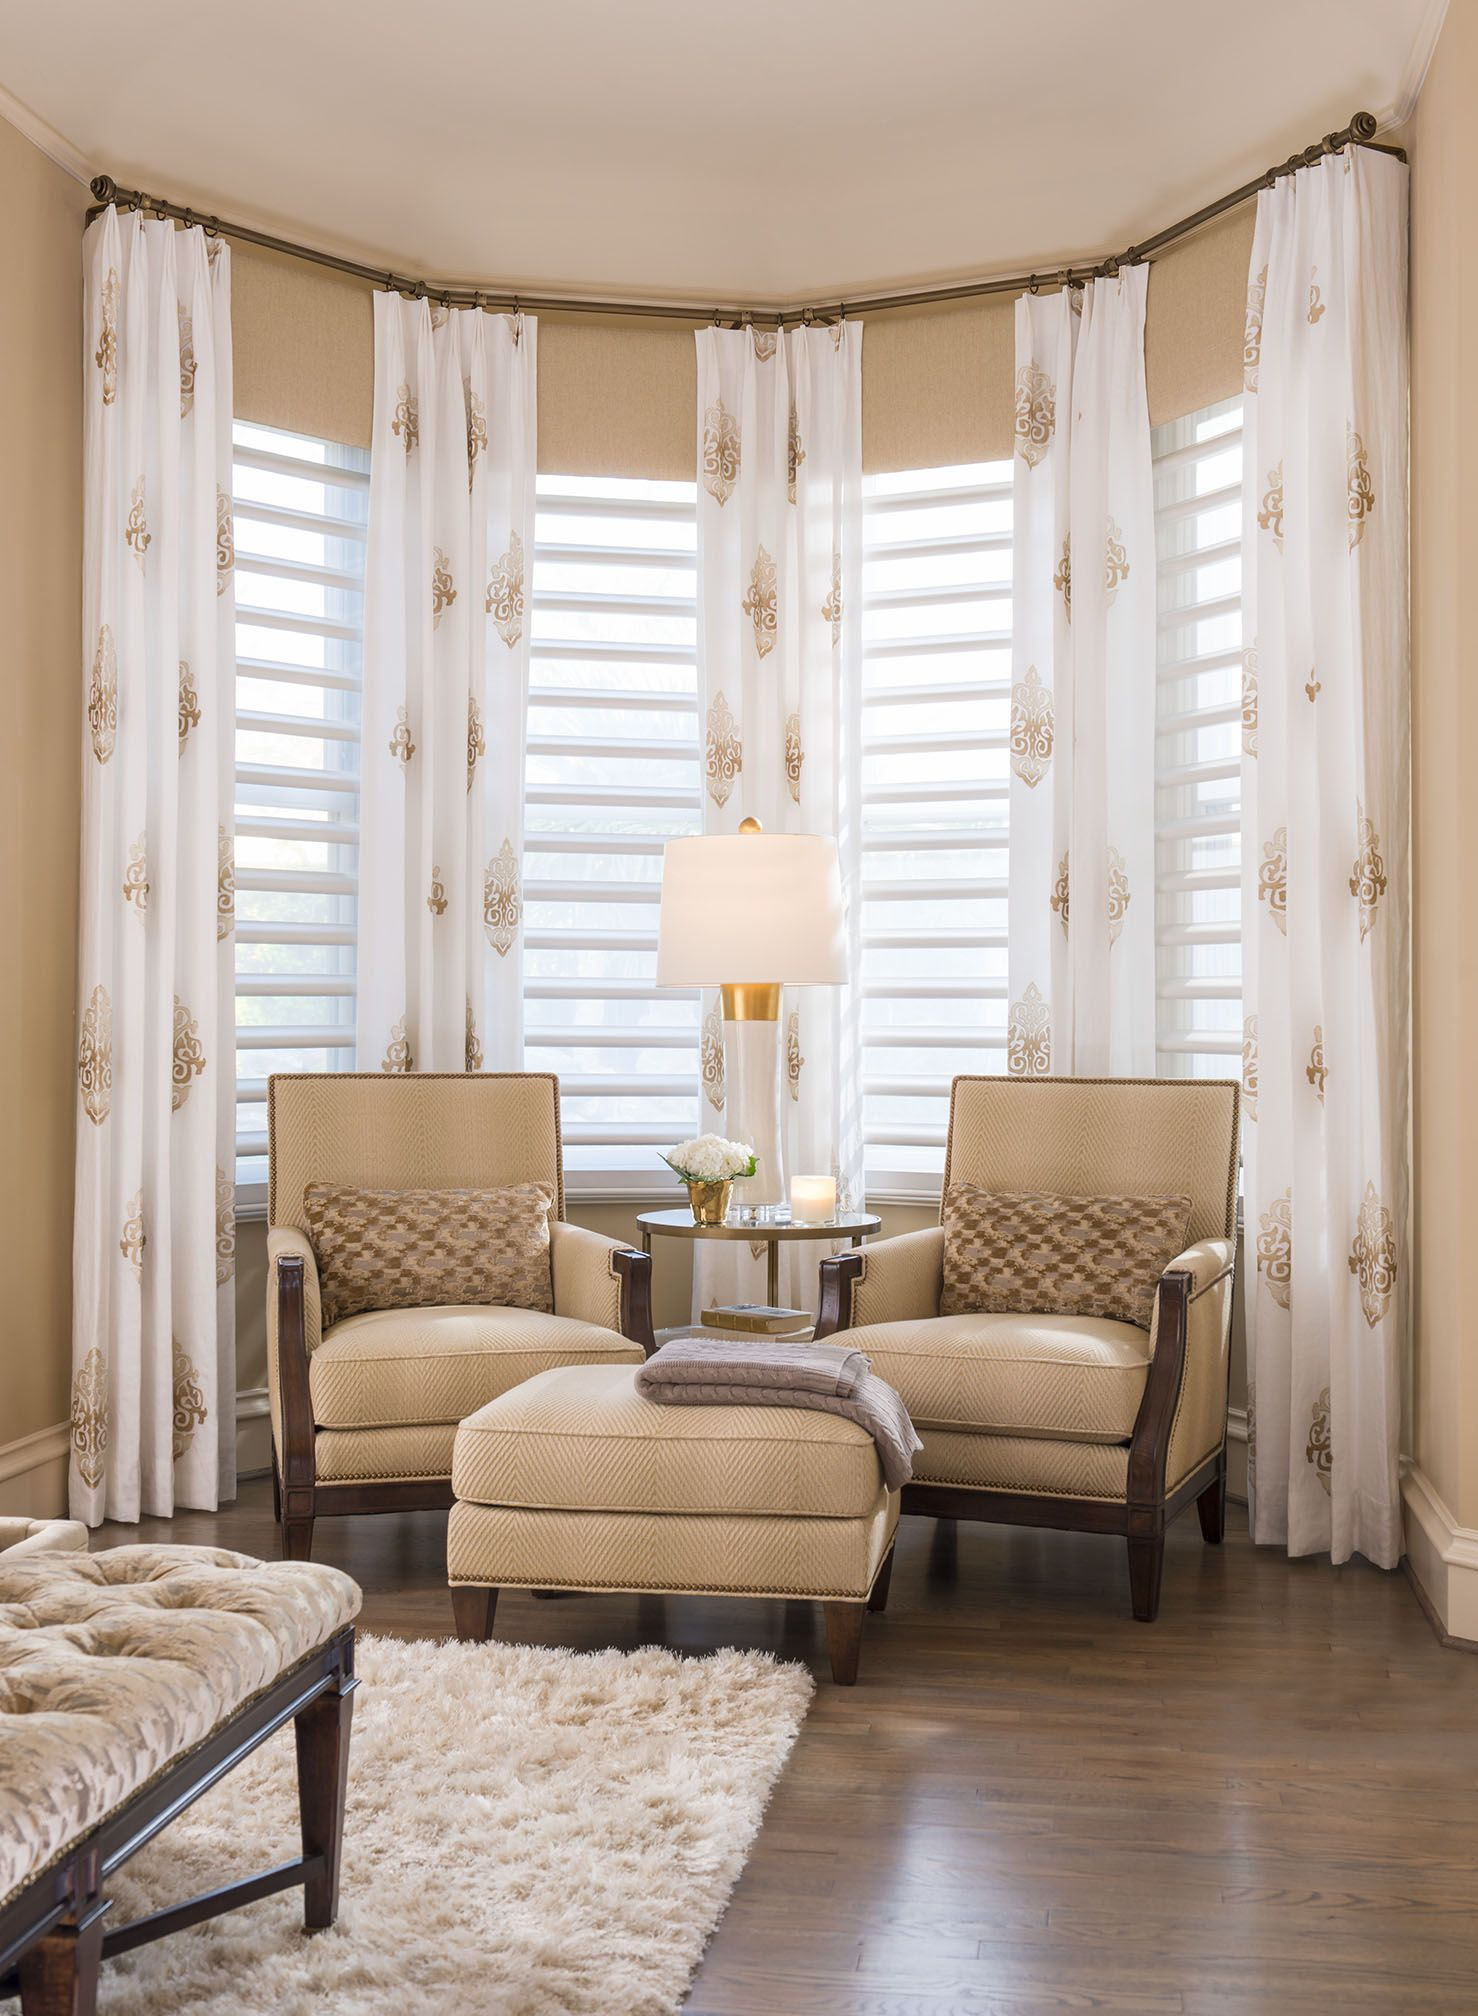 Window Coverings by Sunrise Blinds of Texas Interior Design by IBB Design & Window Coverings by Sunrise Blinds of Texas Interior Design by IBB ...